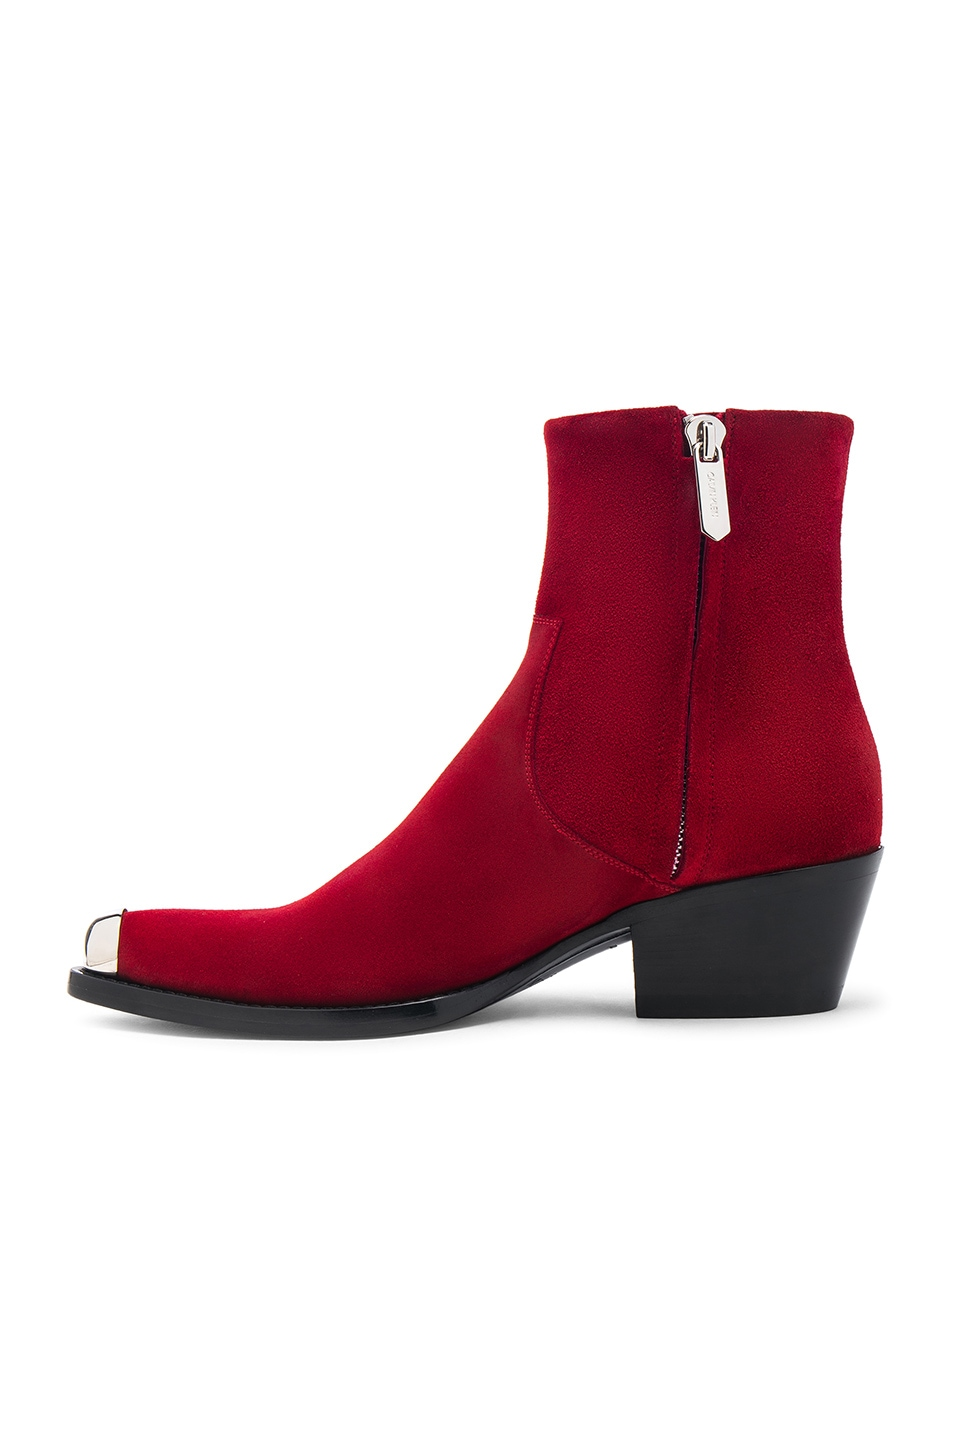 Image 5 of CALVIN KLEIN 205W39NYC Suede Tex Chiara Ankle Boots in Red